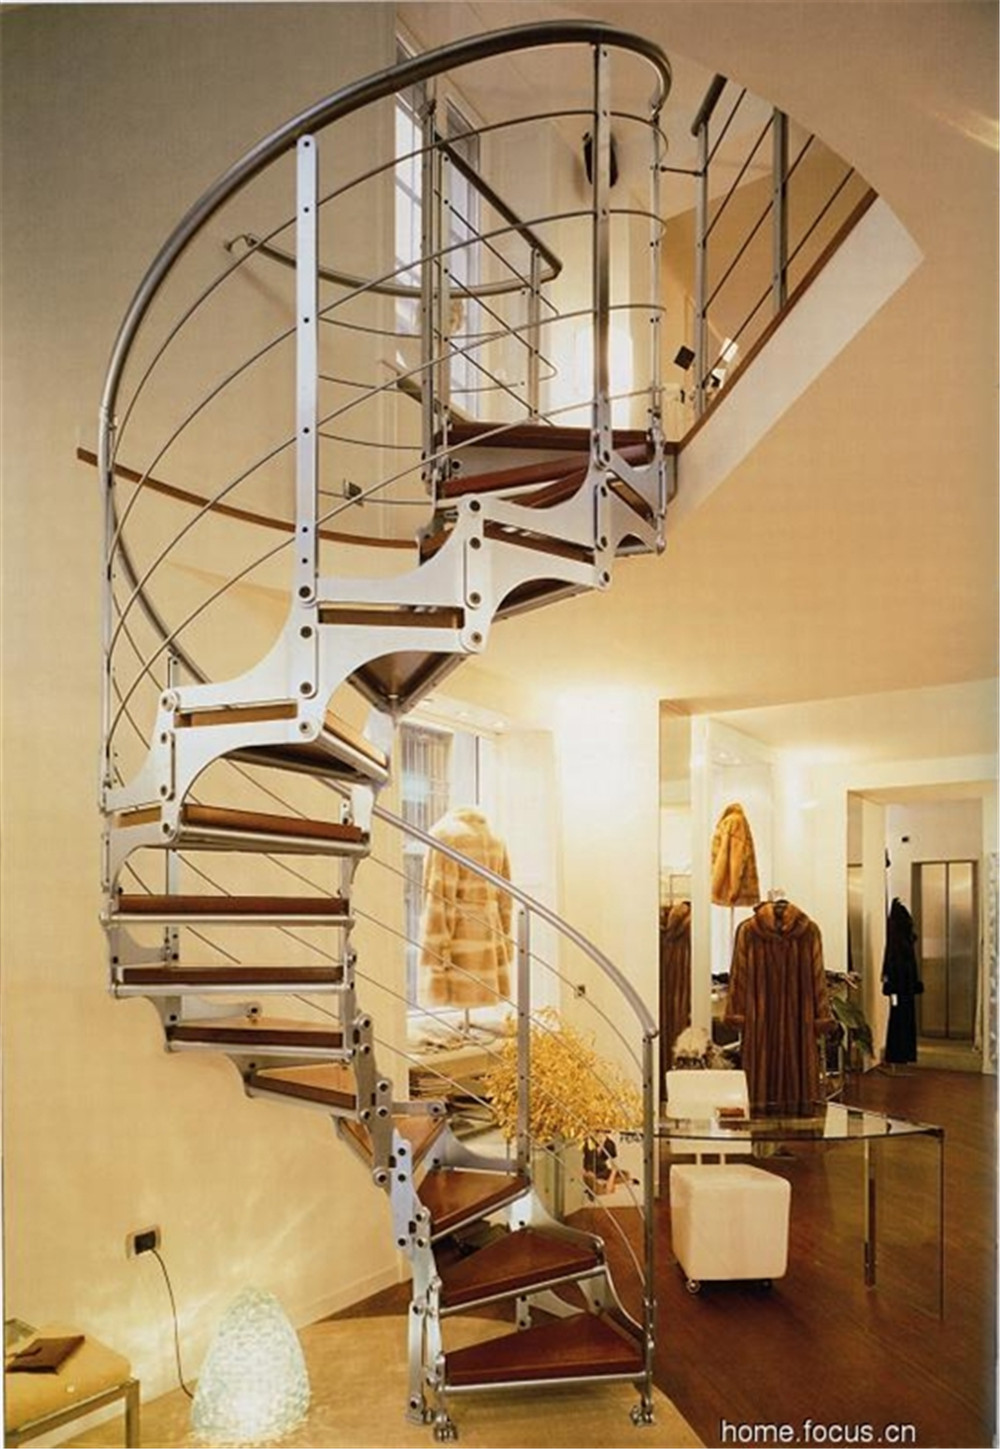 Modern Spiral Font B Staircase B Font Steel Stair With Stainless Steel